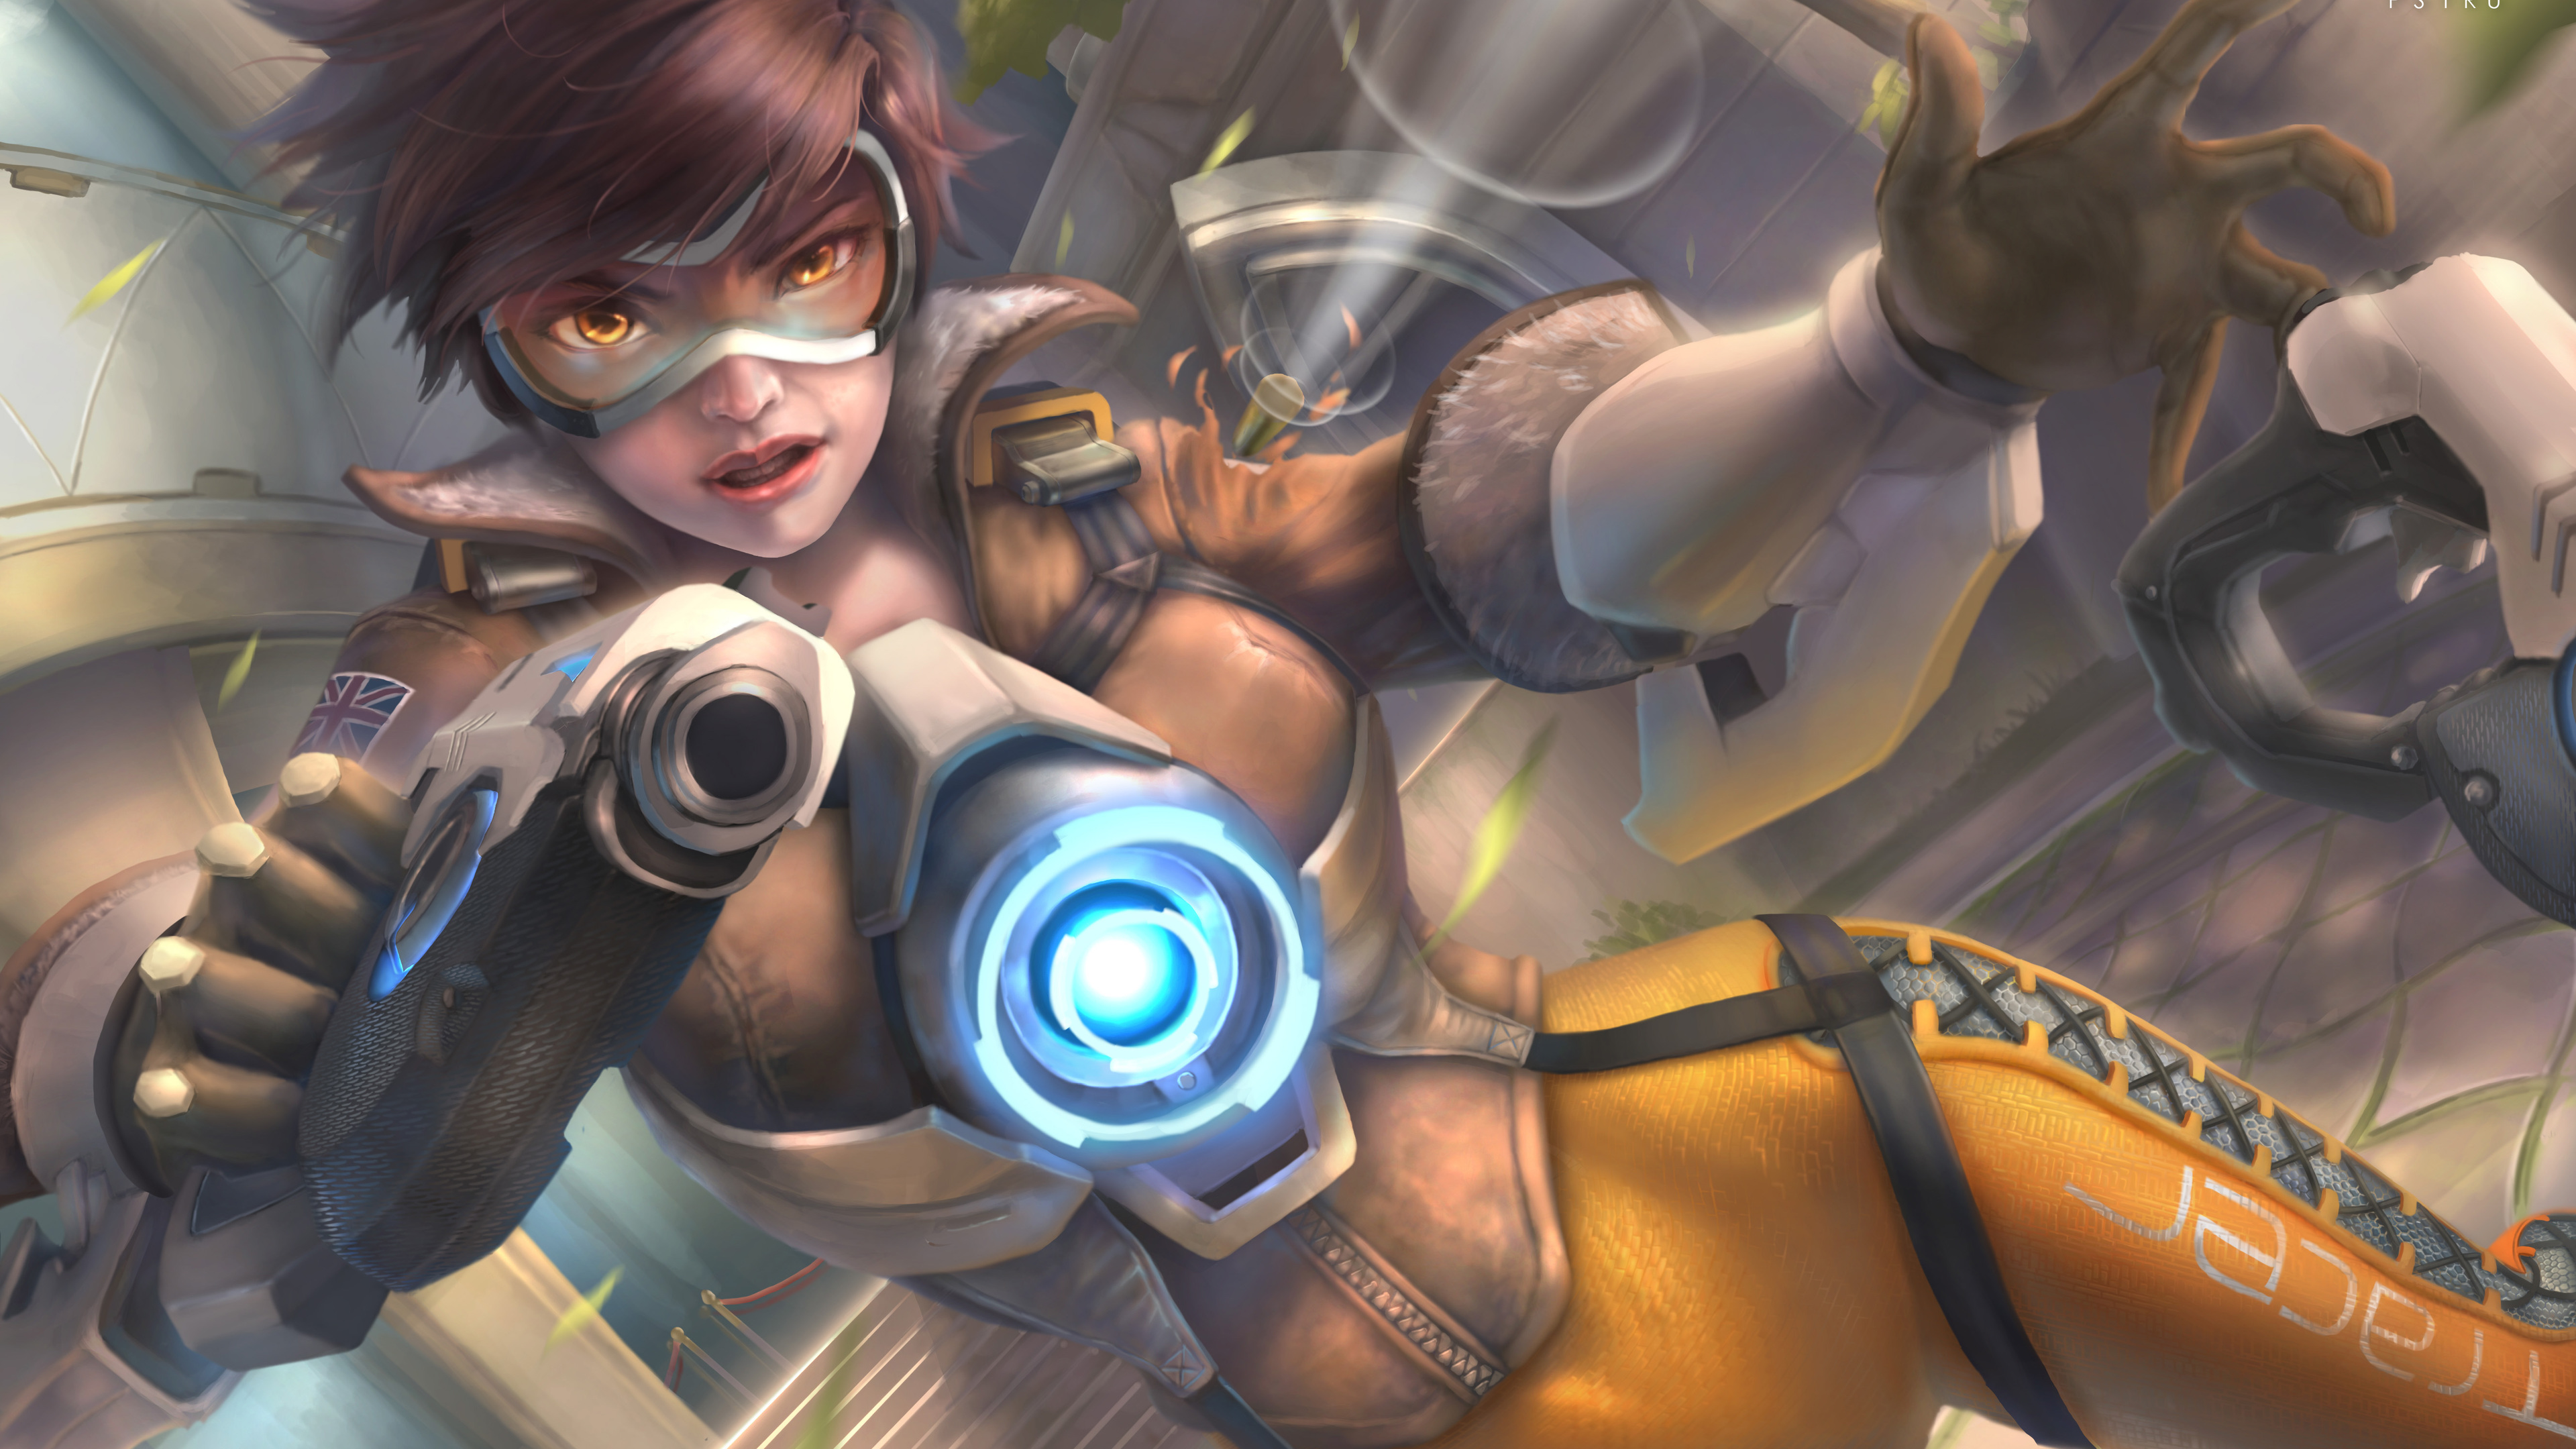 tracer ovewatch artwork 5k 1538343618 - Tracer Ovewatch Artwork 5k - xbox games wallpapers, tracer overwatch wallpapers, ps games wallpapers, pc games wallpapers, overwatch wallpapers, hd-wallpapers, games wallpapers, digital art wallpapers, deviantart wallpapers, artwork wallpapers, artist wallpapers, 5k wallpapers, 4k-wallpapers, 2016 games wallpapers